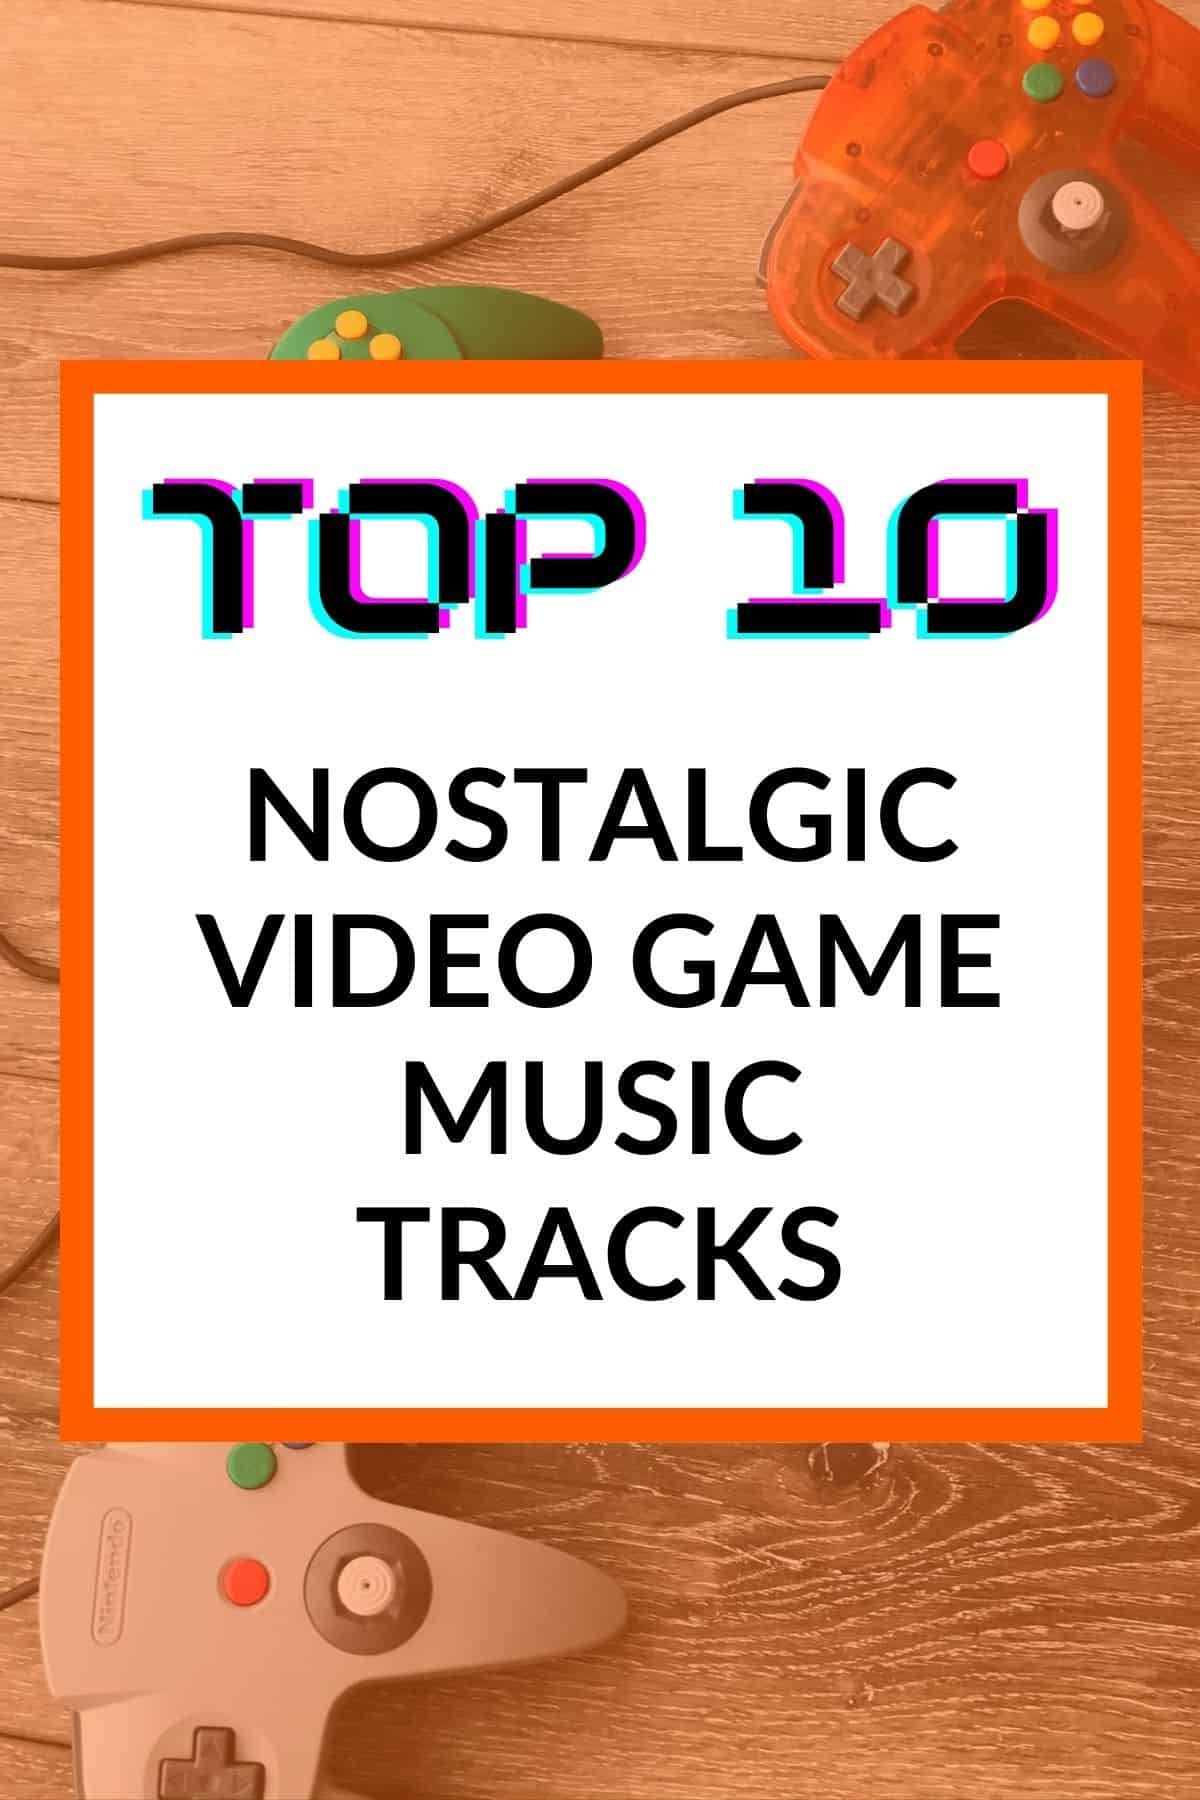 Text and image graphic for top 10 nostalgic video game tracks.